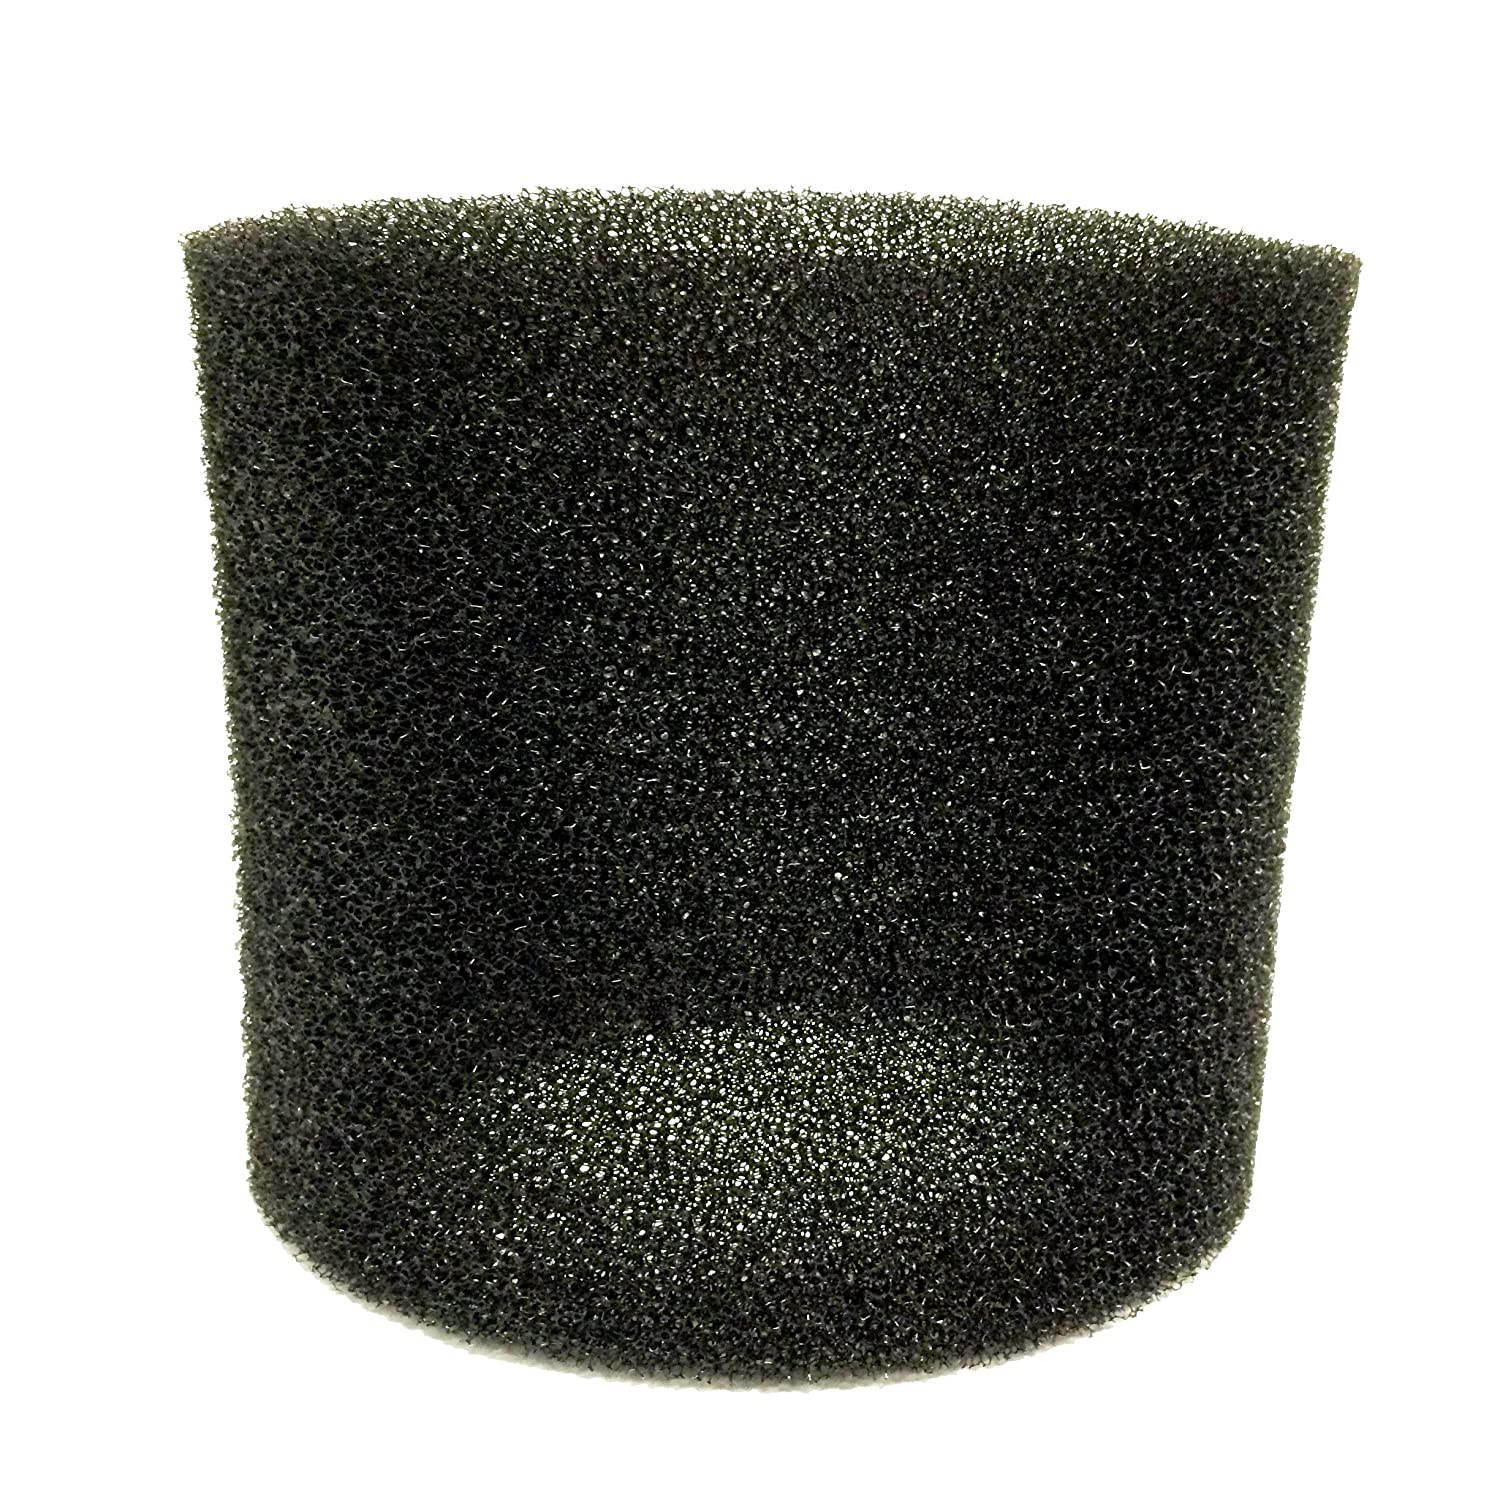 4YourHome Foam Filter Sleeve Fits Shop Vac Wet Dry Replaces 90585 9058500 90585-00 FBA_USAFIL832